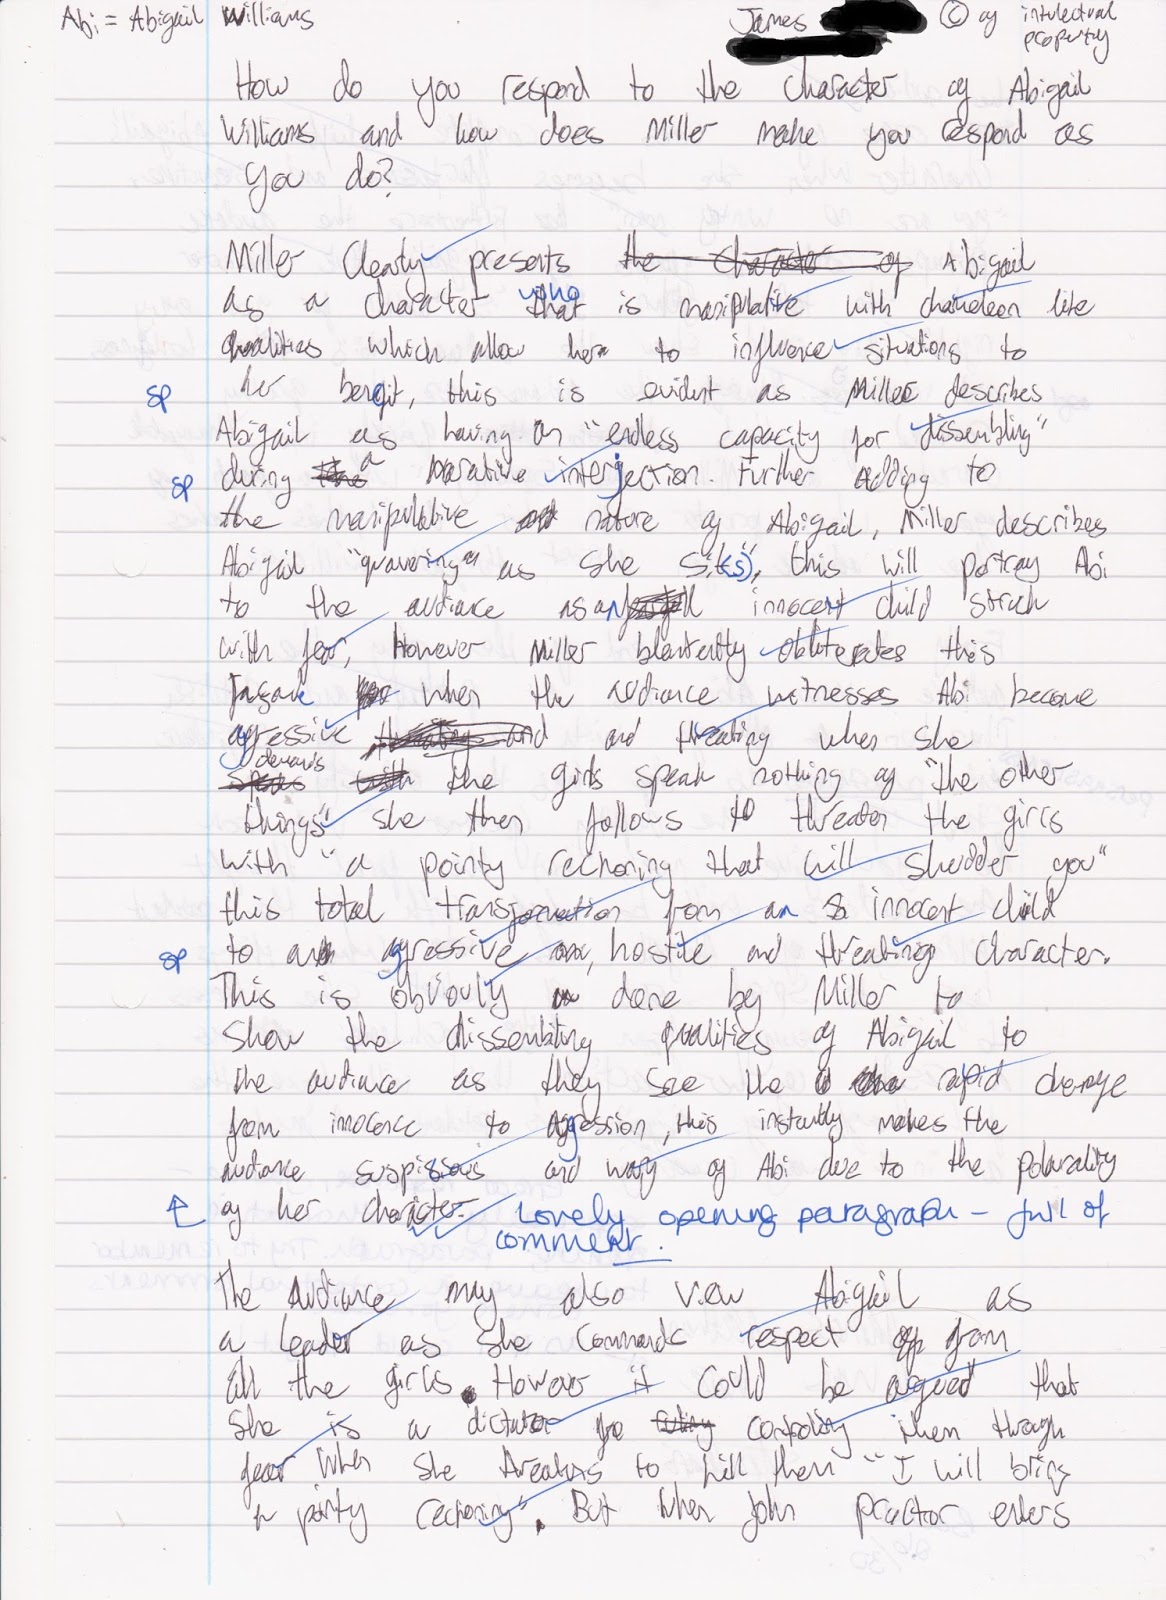 abigail williams essay pandora s essay for some interesting reader responses to abigail pandora s essay for some interesting reader responses to abigail